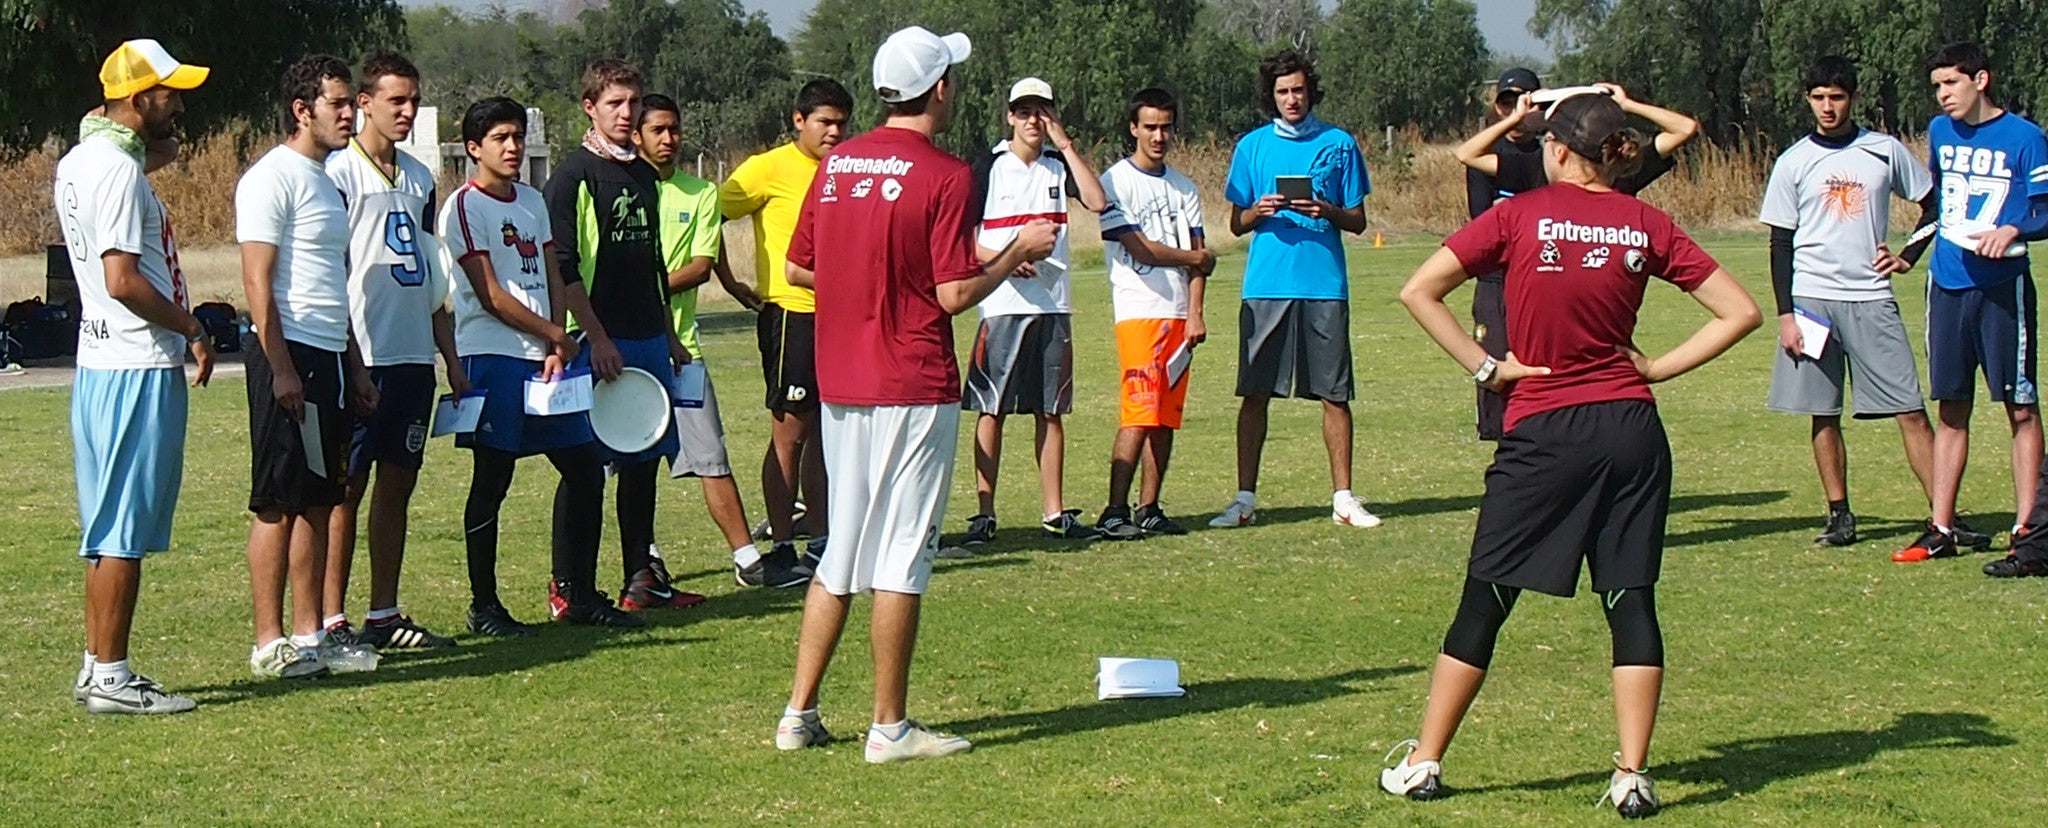 Titcomb running an ultimate frisbee clinic in Mexico